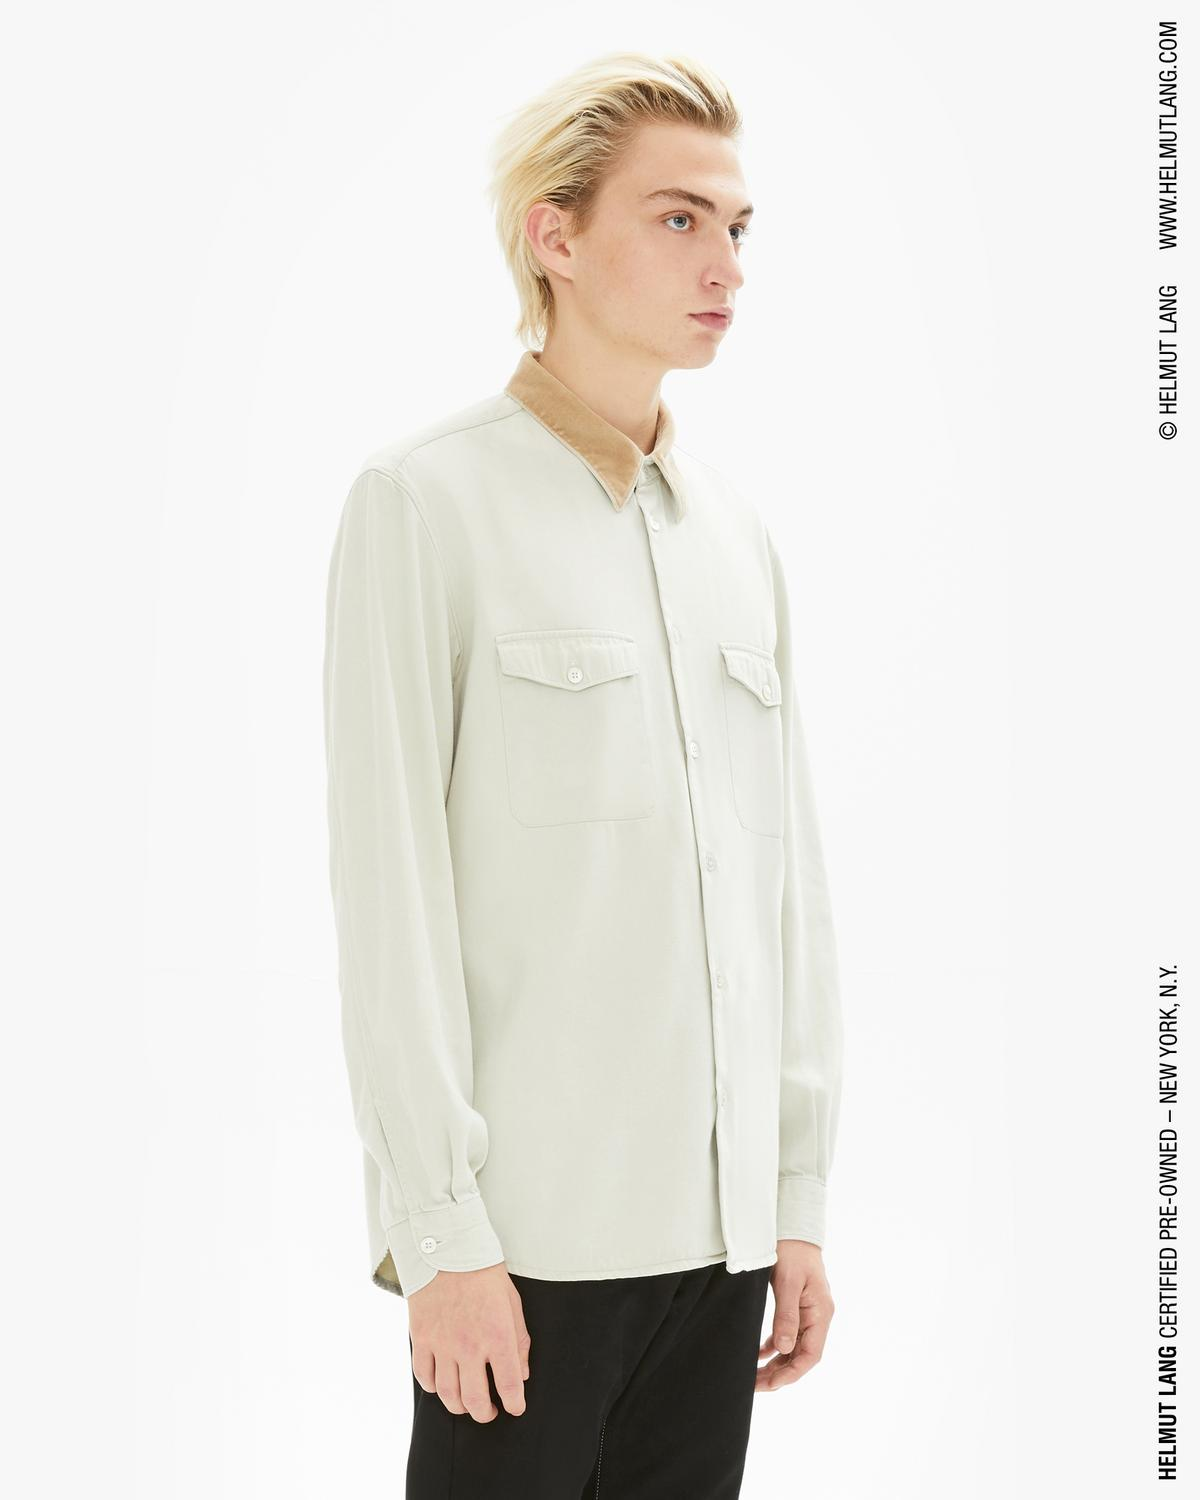 Workwear Shirt with Velvet Collar